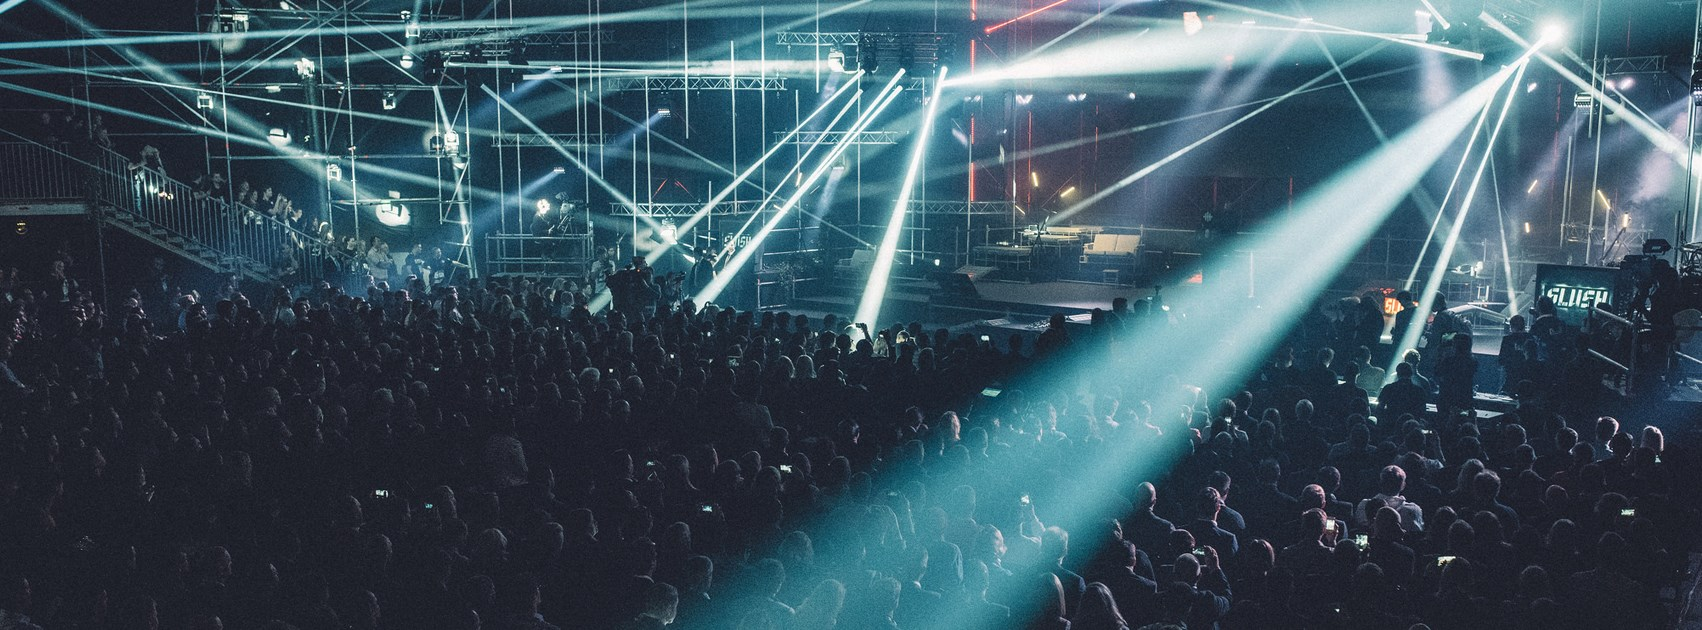 Win a pair of tickets to Slush Music in Helsinki!